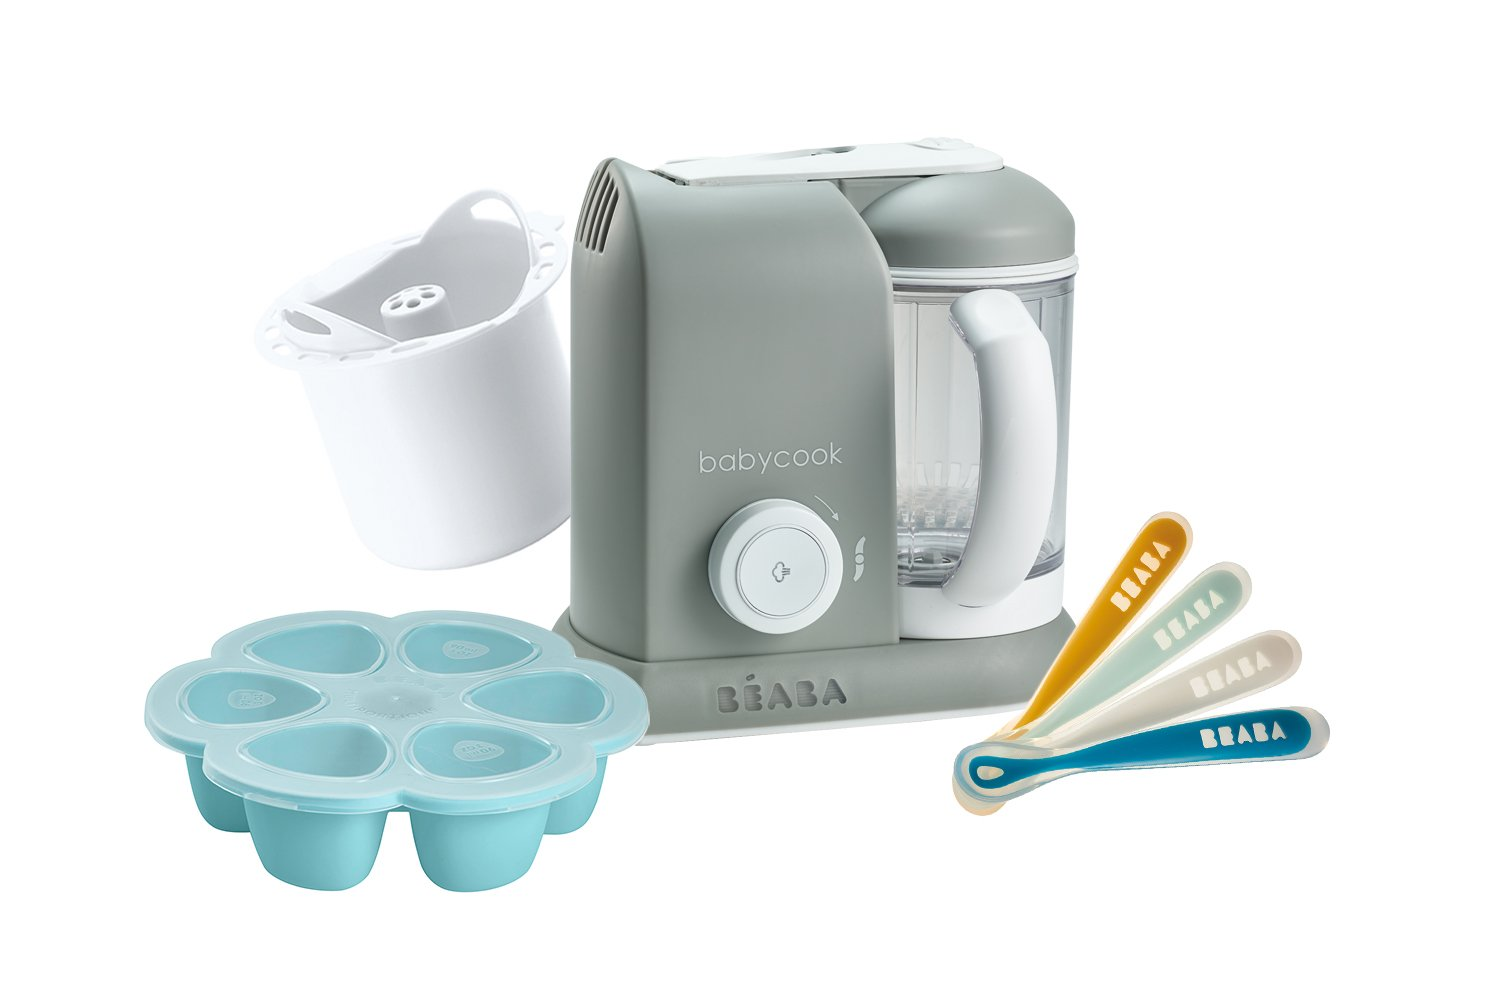 BEABA 1st Stage Feeding Gift Set, Includes Babycook, Silicone Spoons, Silicone Food Storage Tray, Grain Insert, Cloud